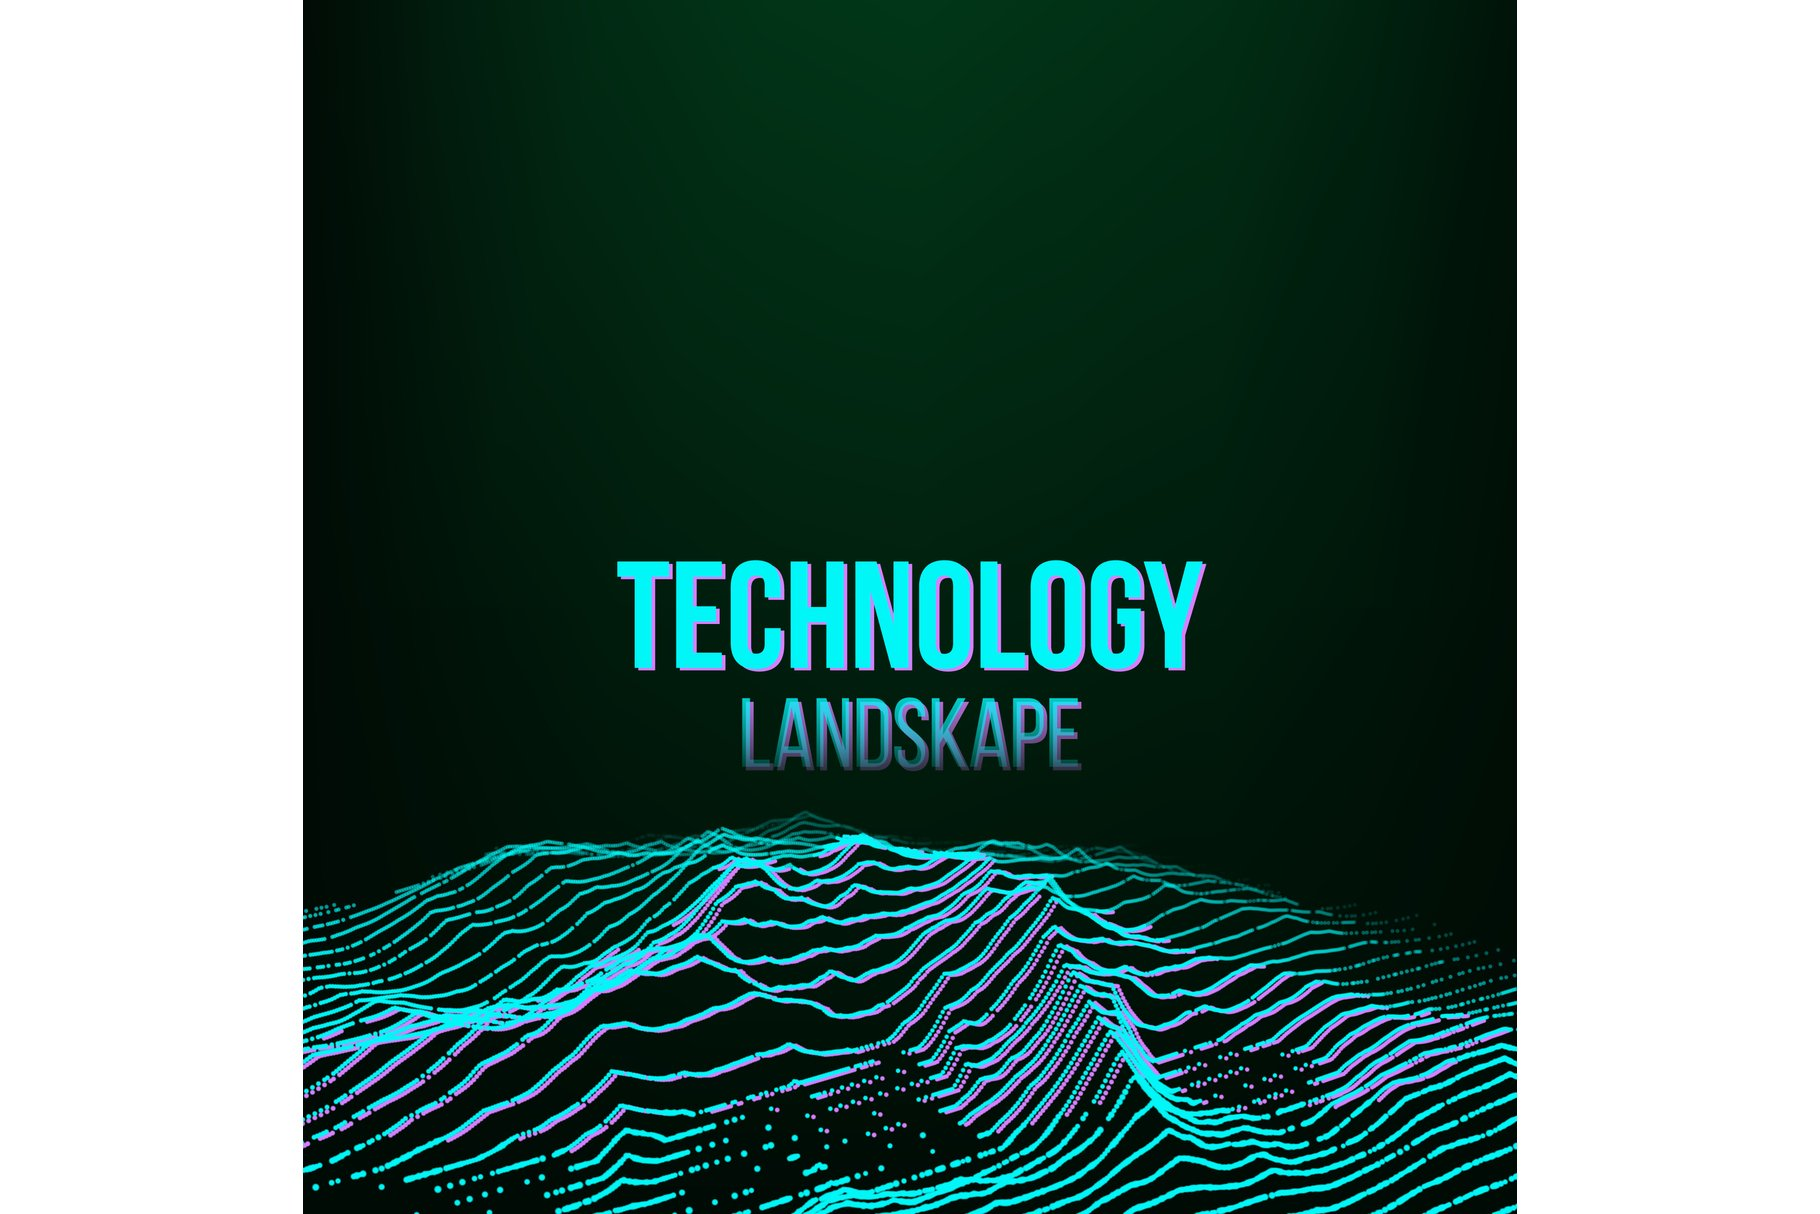 Abstract Digital Landscape Background Vector. Signal Noise. example image 1